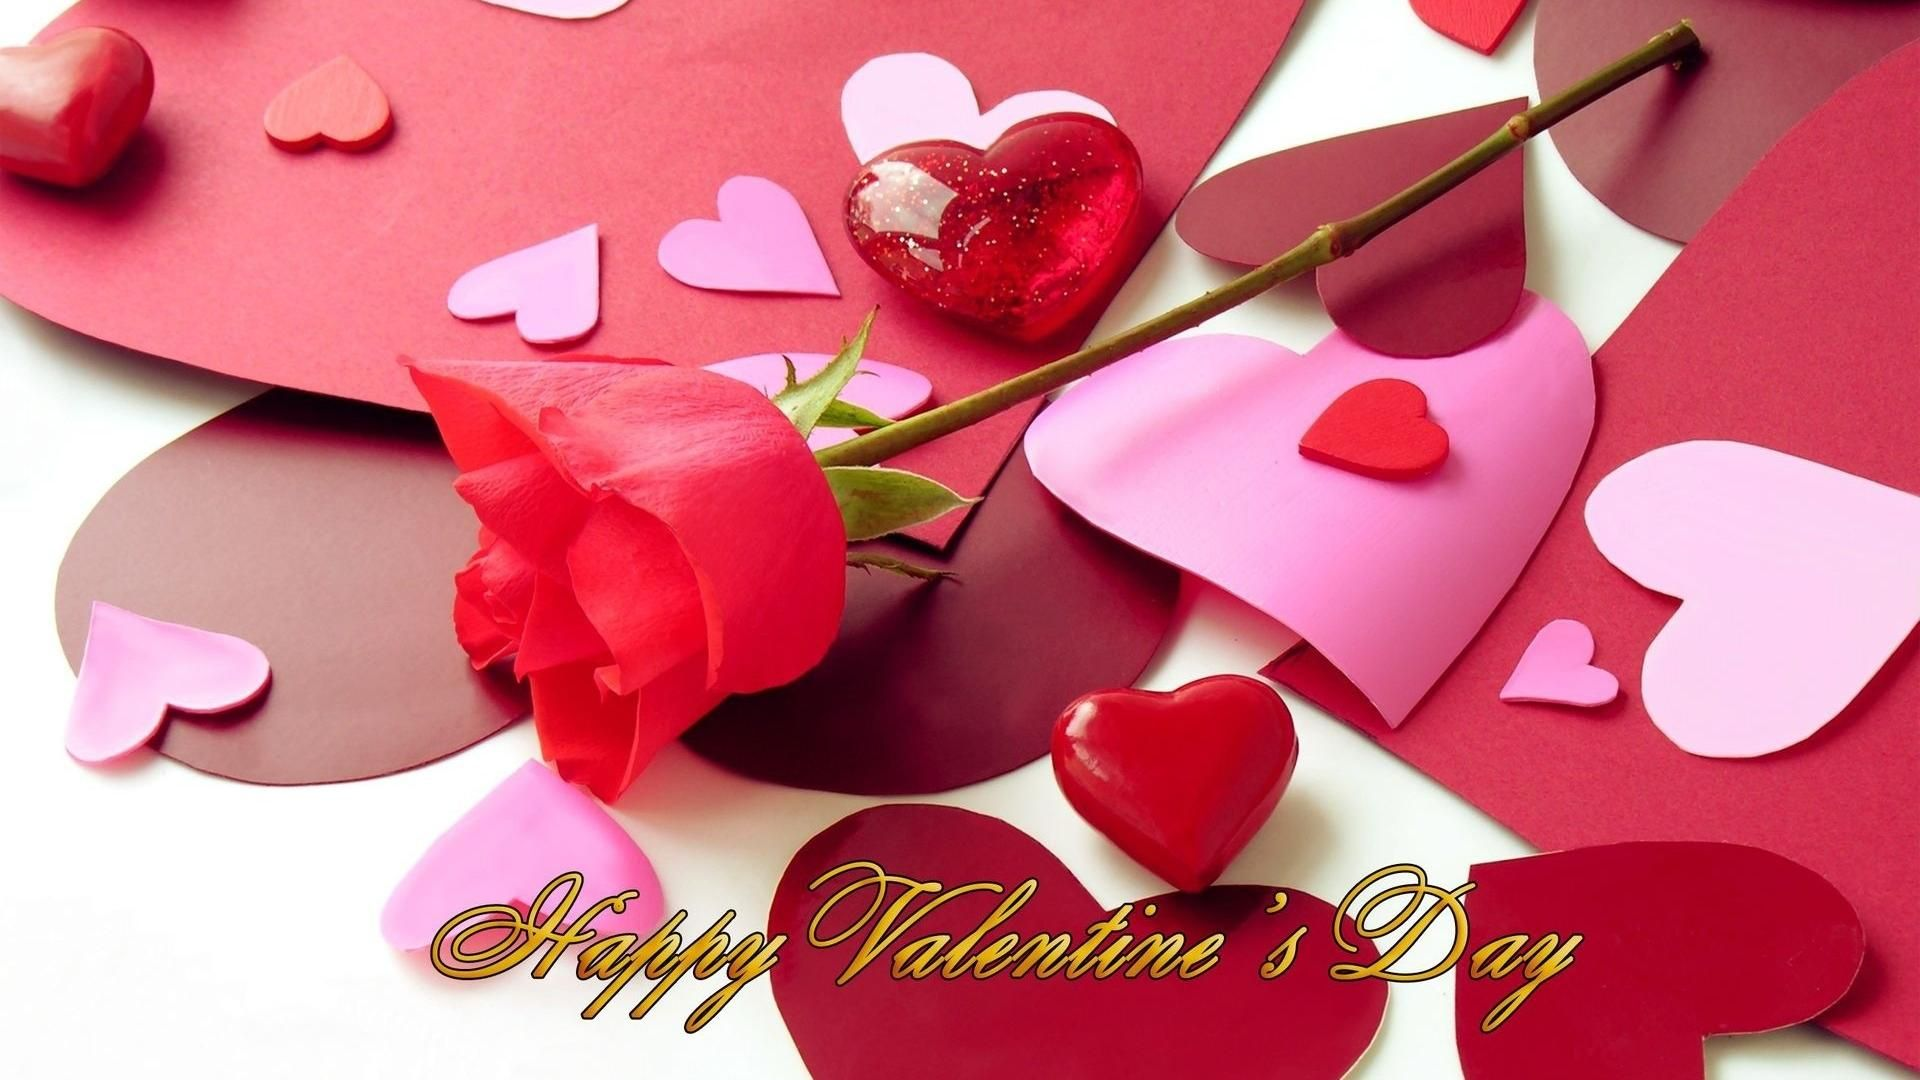 valentines day backgrounds tumblr 7 | valentines day | pinterest, Ideas